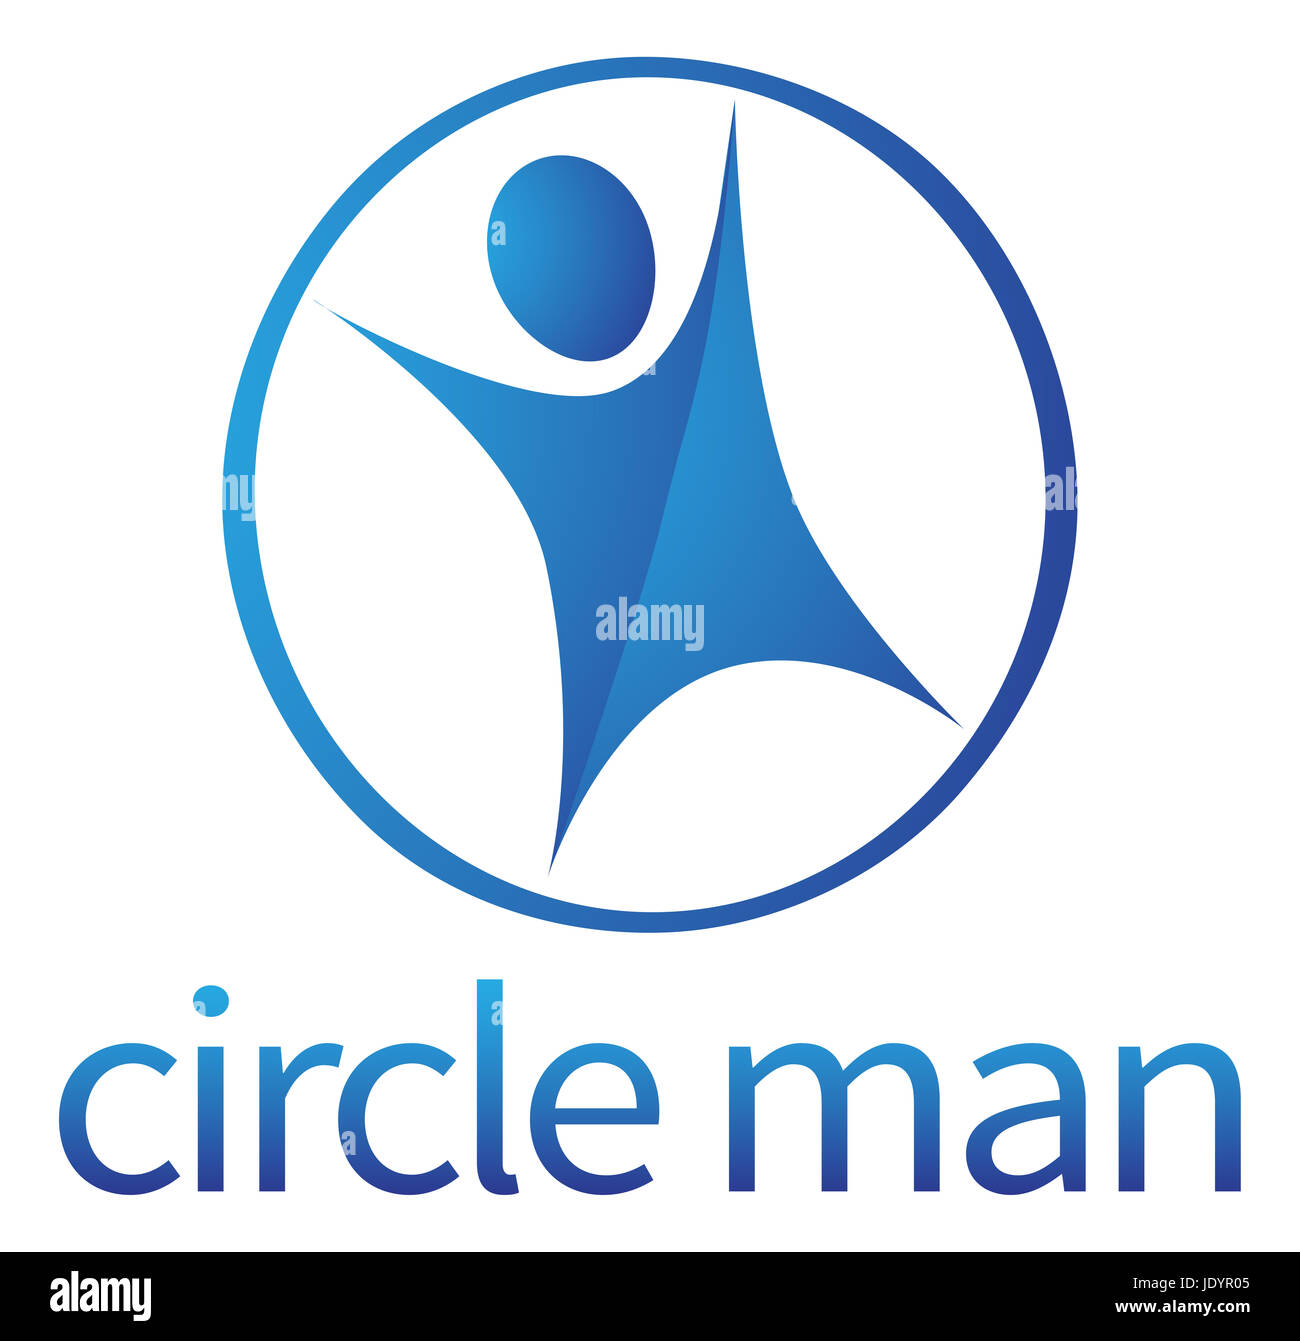 A conceptual illustration of a stylised blue person in a circle - Stock Image